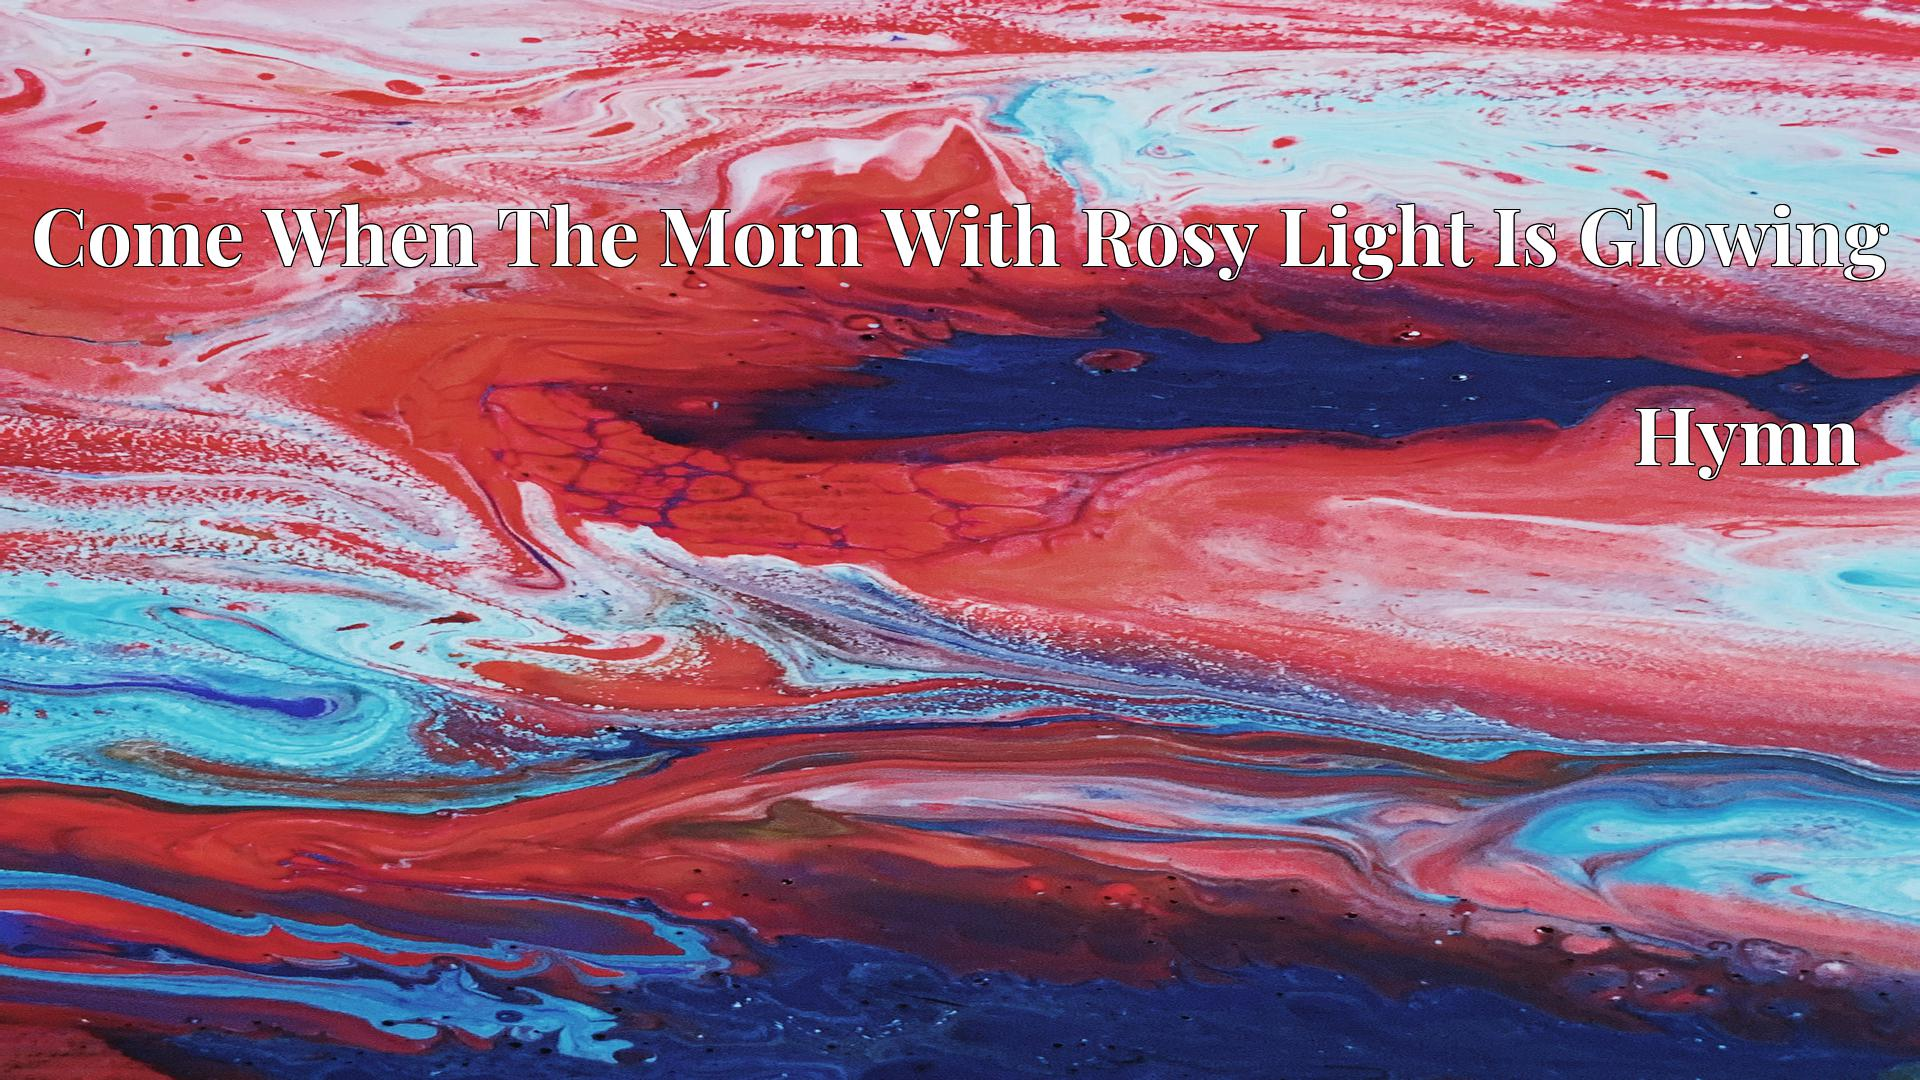 Come When The Morn With Rosy Light Is Glowing - Hymn